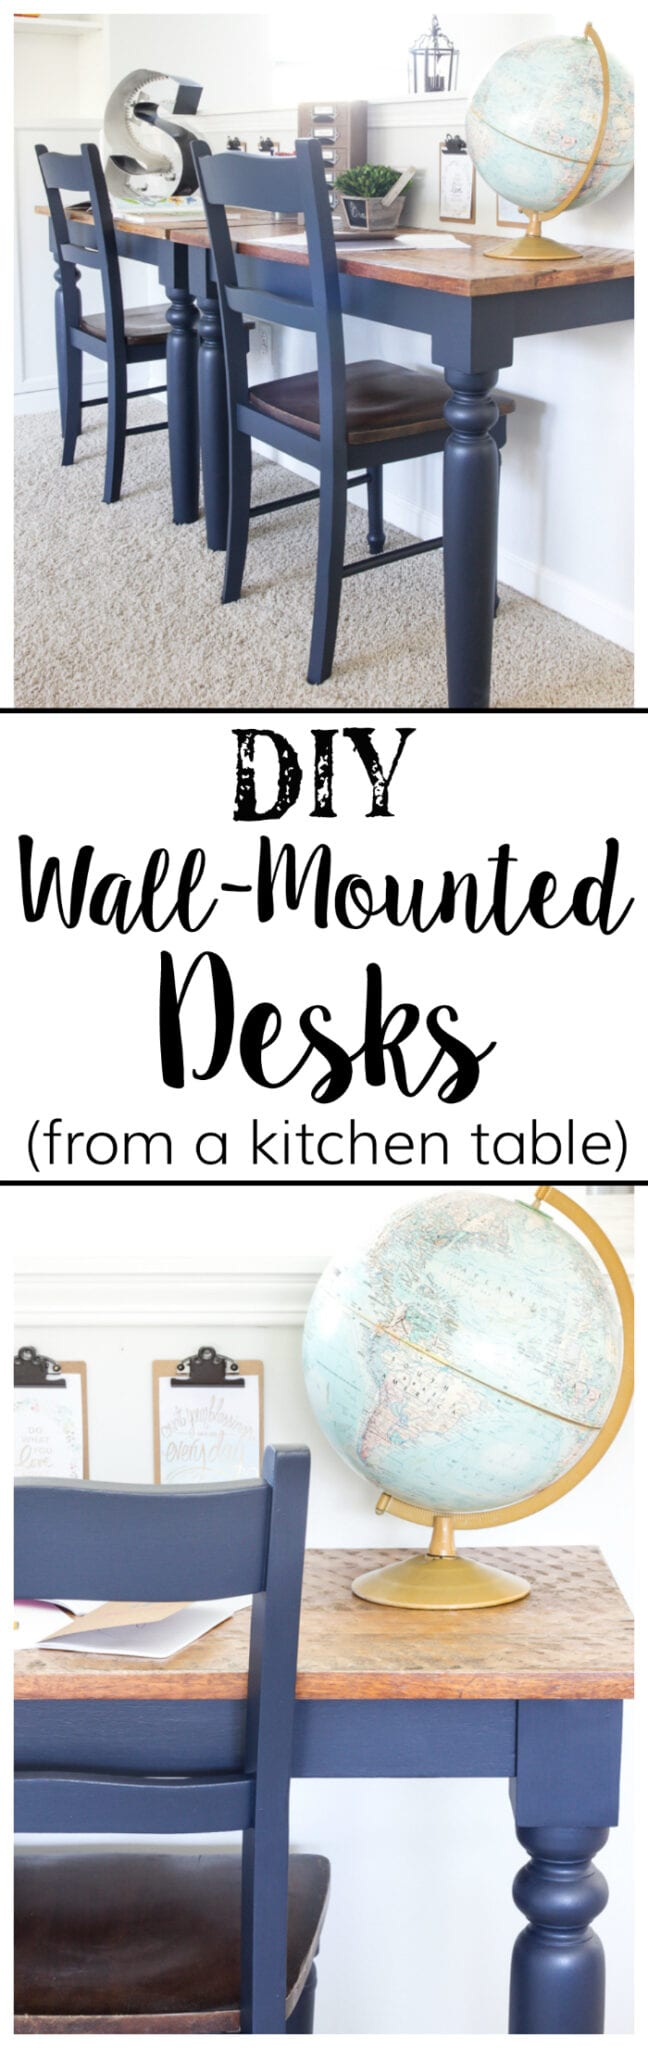 Repurposed Kitchen Table Turned Desks | blesserhouse.com - How to use a repurposed kitchen table to cut in half and make wall-mounted desks for a playroom makeover with Fusion Mineral Paint Midnight Blue.